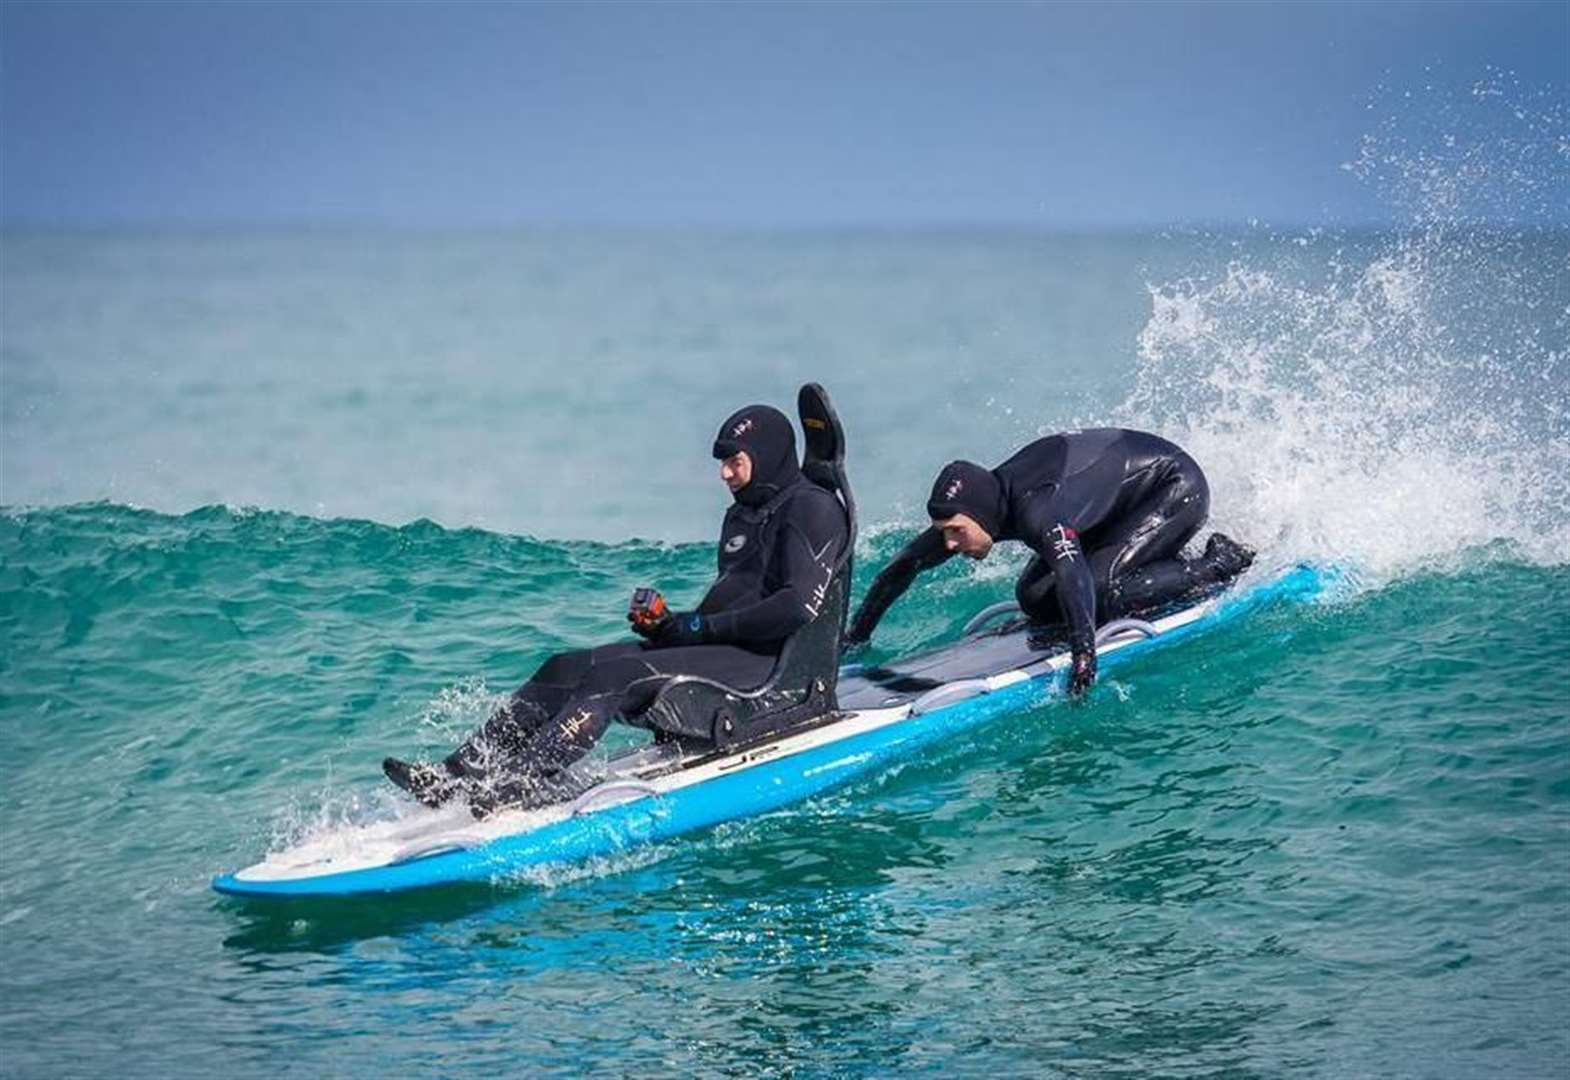 Lossie surf school on crest of wave after funds boost